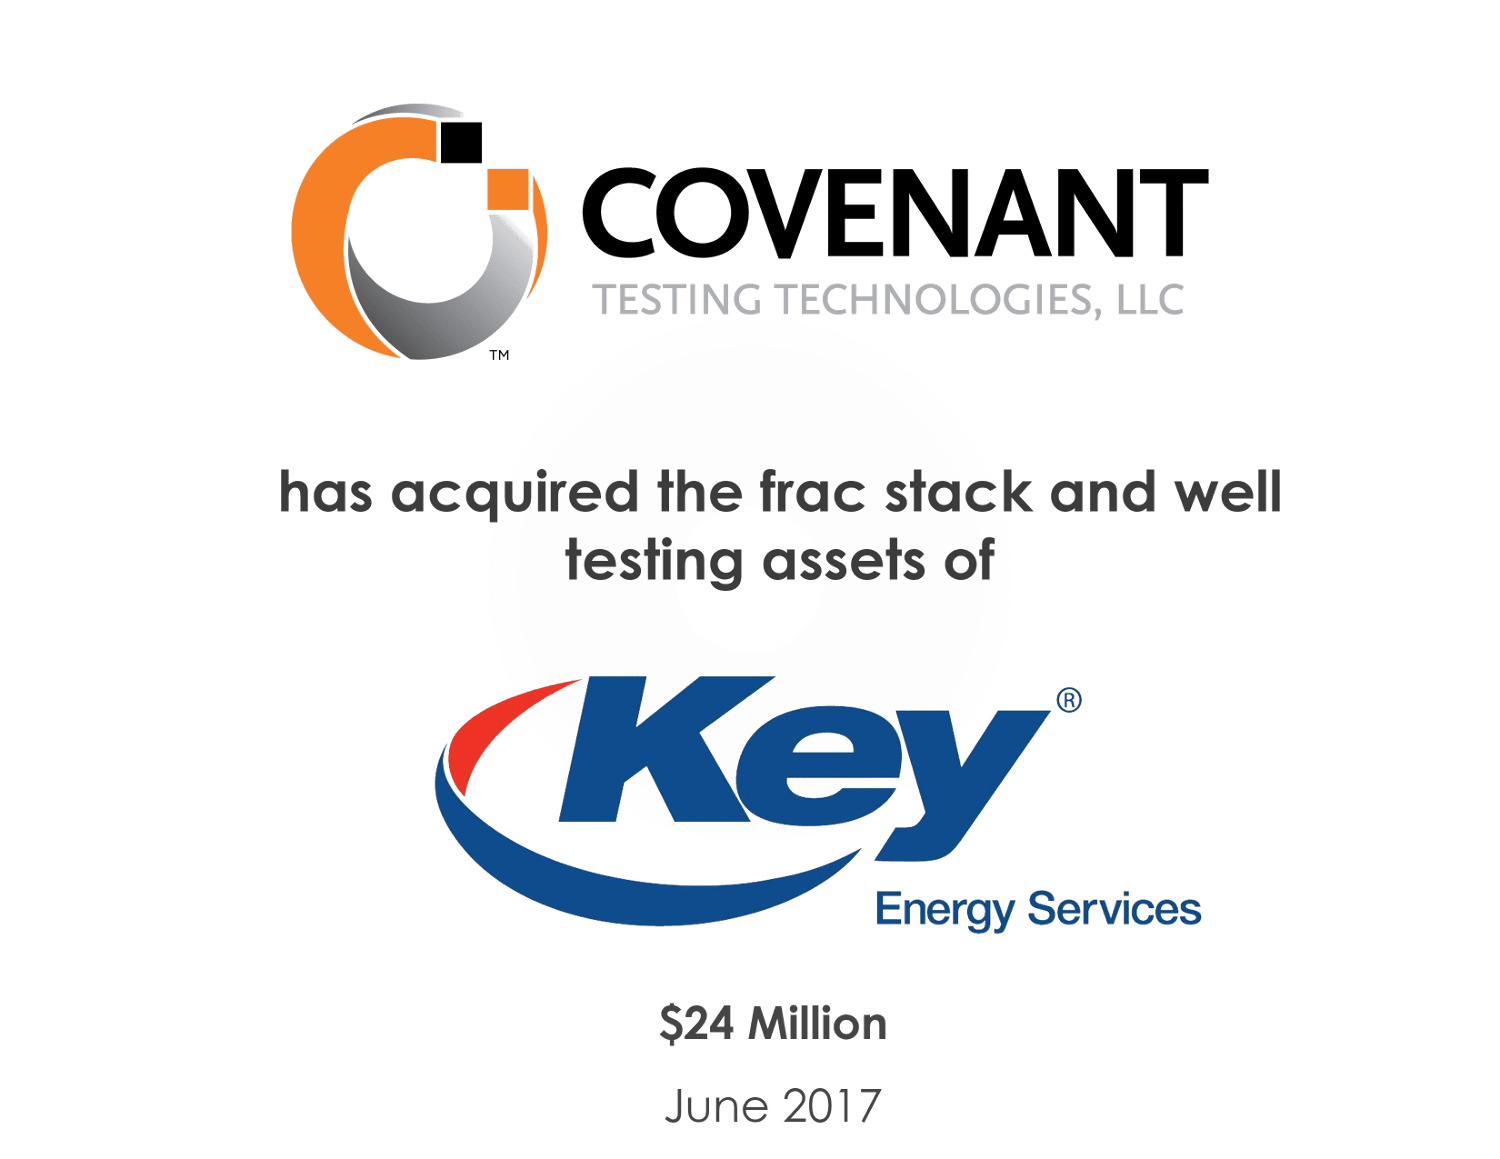 Covenant Testing Technologies, LLC | Focused on putting our